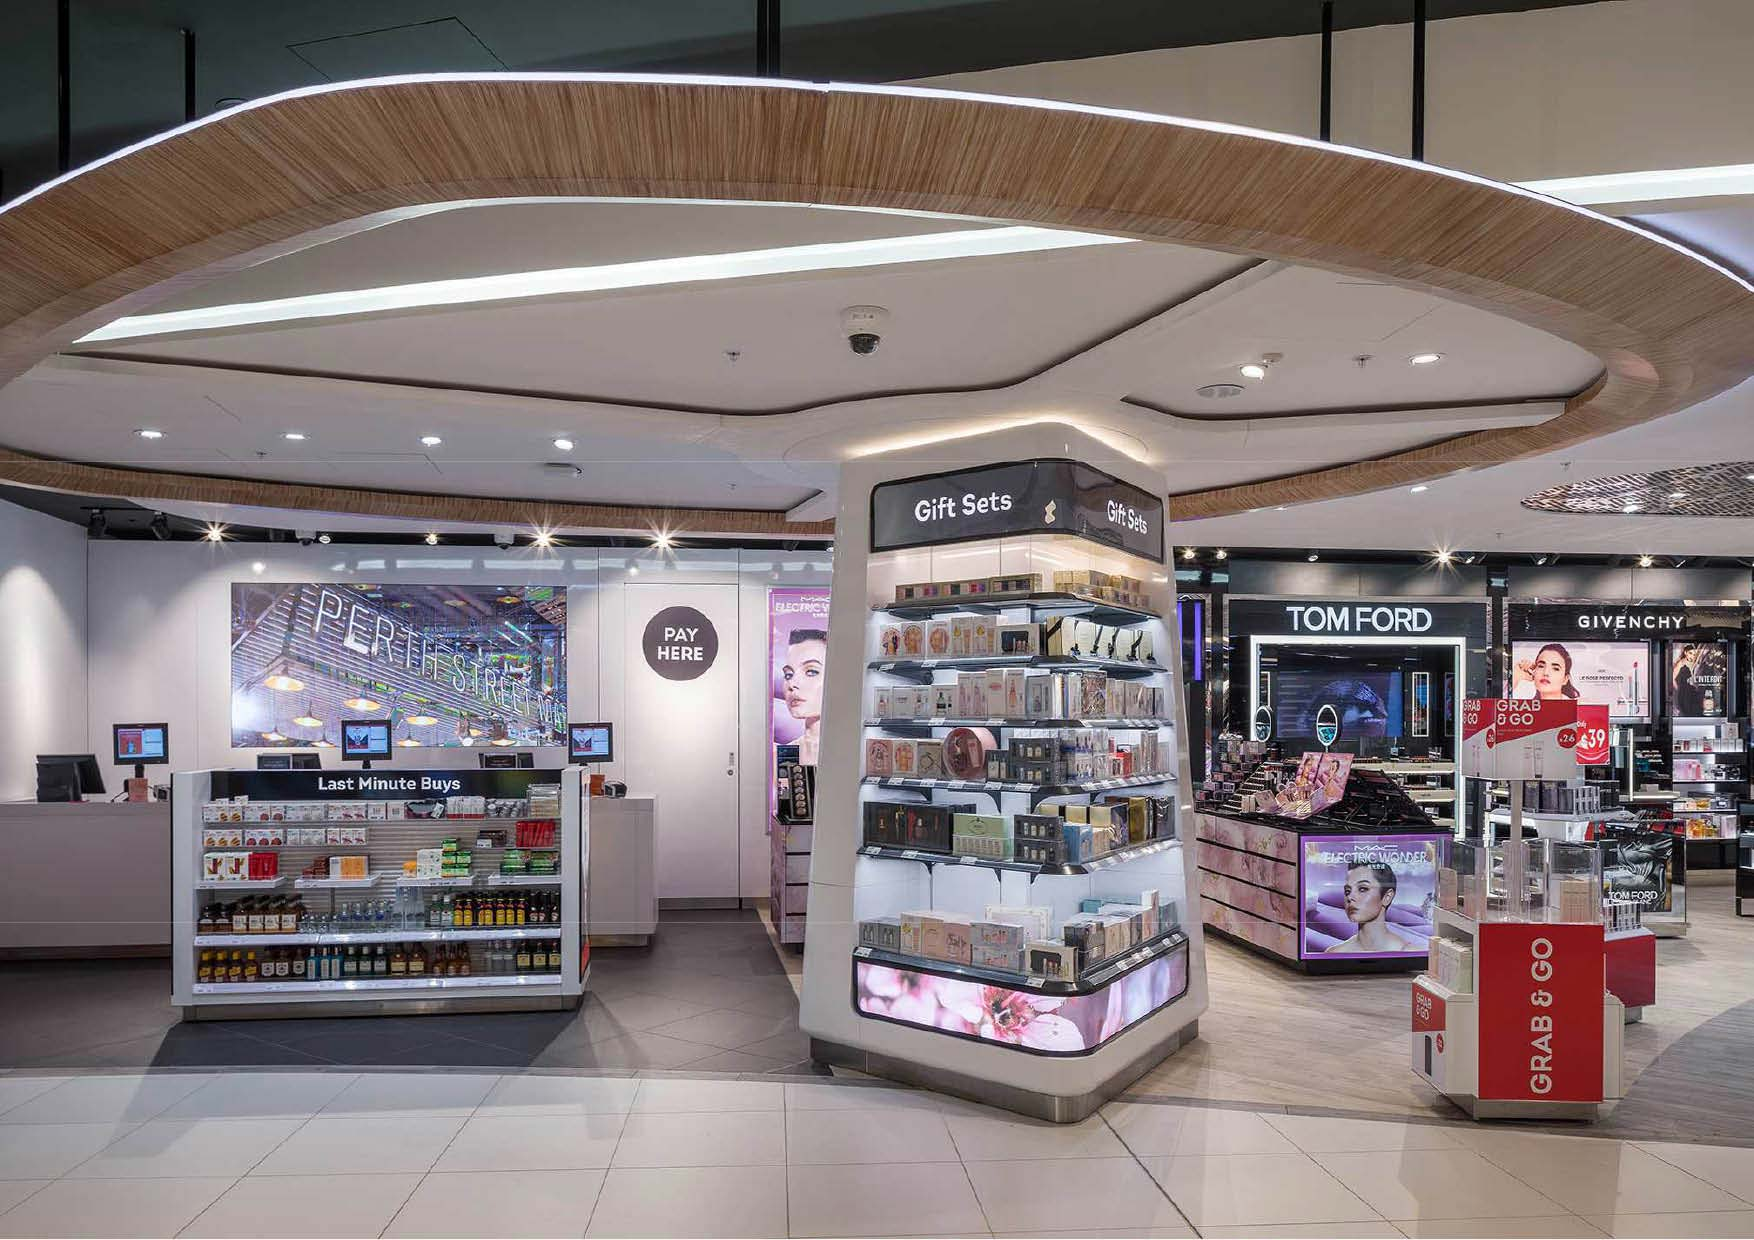 Beauty retail stands at the Perth International Airport Duty Free shopping area with circular timber ceiling feature